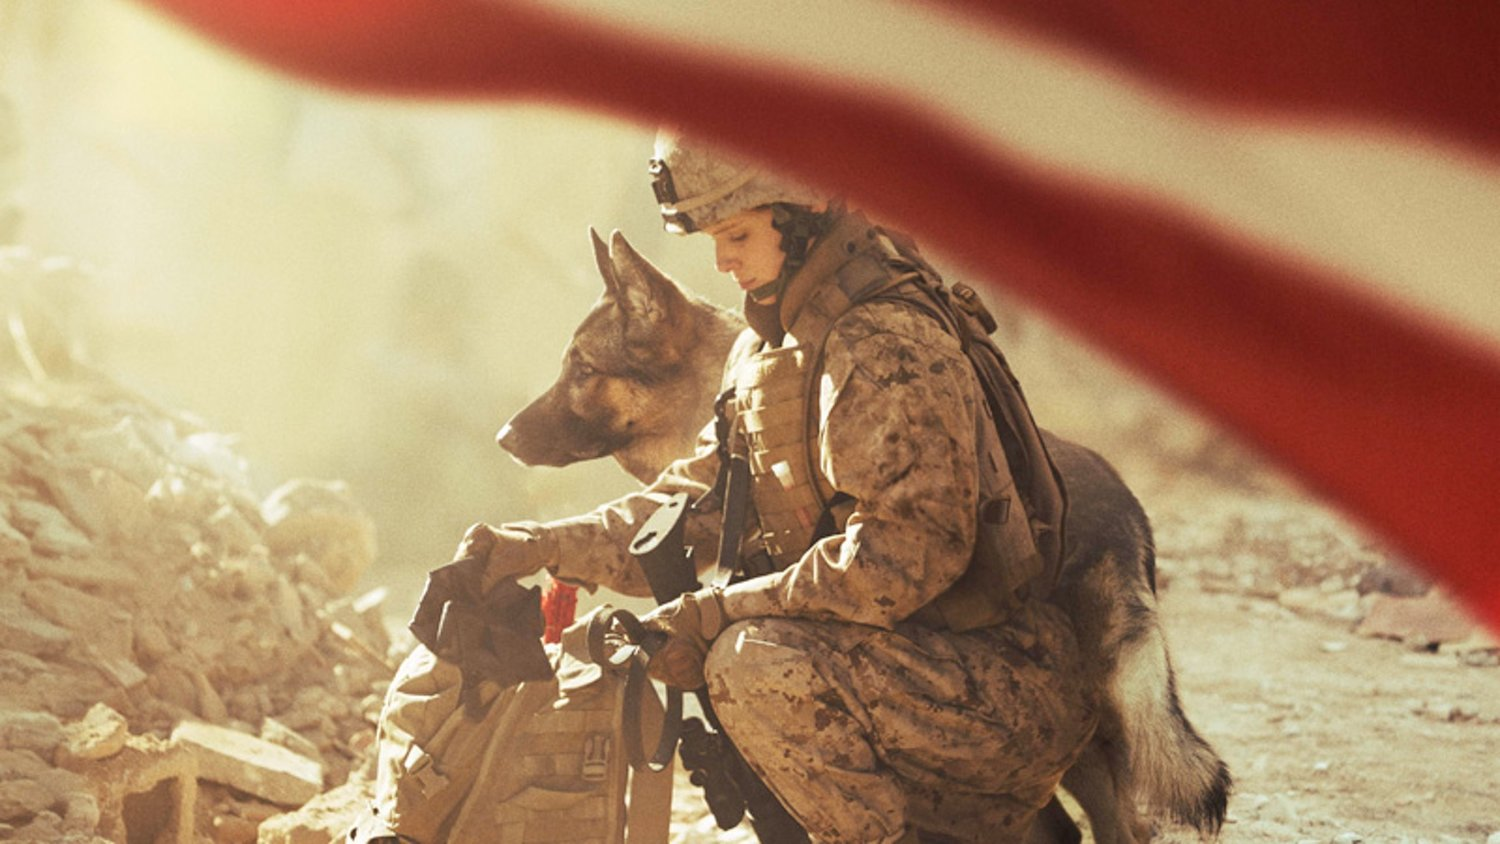 Inspiring Trailer for the War Drama MEGAN LEAVEY About a Marine and Her Dog